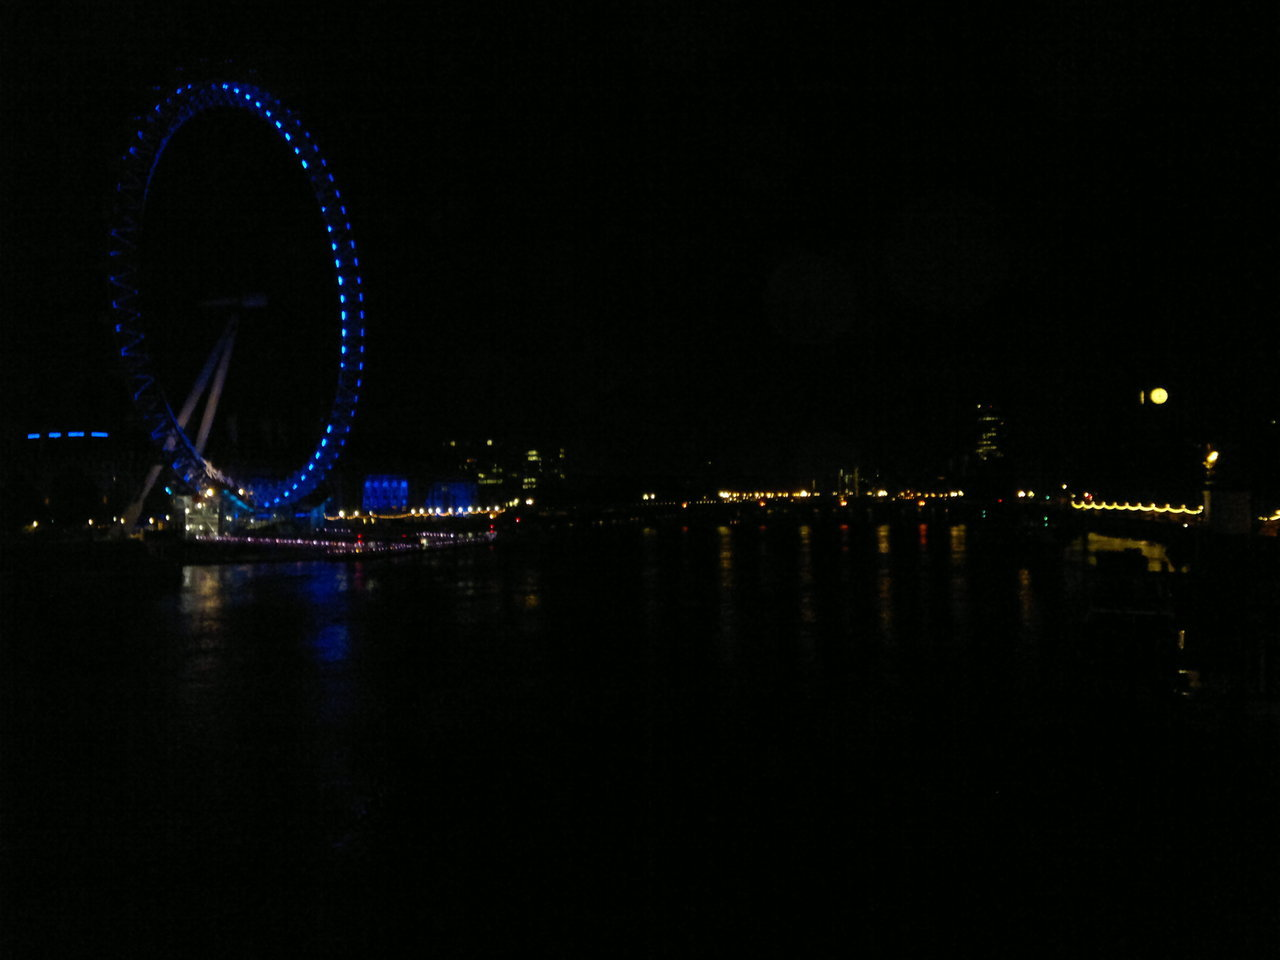 London Sleeping Took a walk around London last night at about 2.30am, was amazing to see the city in the dead of night, with almost nobody else around. Took this from the Golden Jubilee footbridge, the London Eye to the left of the picture and the clock face of Big Ben to the right. At about 4am the city started to come alive again, the first few people on their way to work walking along the Embankment, the deliveries to the shops at the train stations, and a gradual increase in the amount of traffic on the roads. Arrived at Waterloo to go home a few hours before the station opened, and so had to spend the few hours in between in the St Thomas' Hospital cafe, which seemed to be the only place that just continued on as normal throughout the night. Caught the train back to Putney at 5.30am, in time to see the deliveries of the day's papers to the station, and the first few commuters from that station. Definitely going to do this again soon, and get some more photos of the city at night.